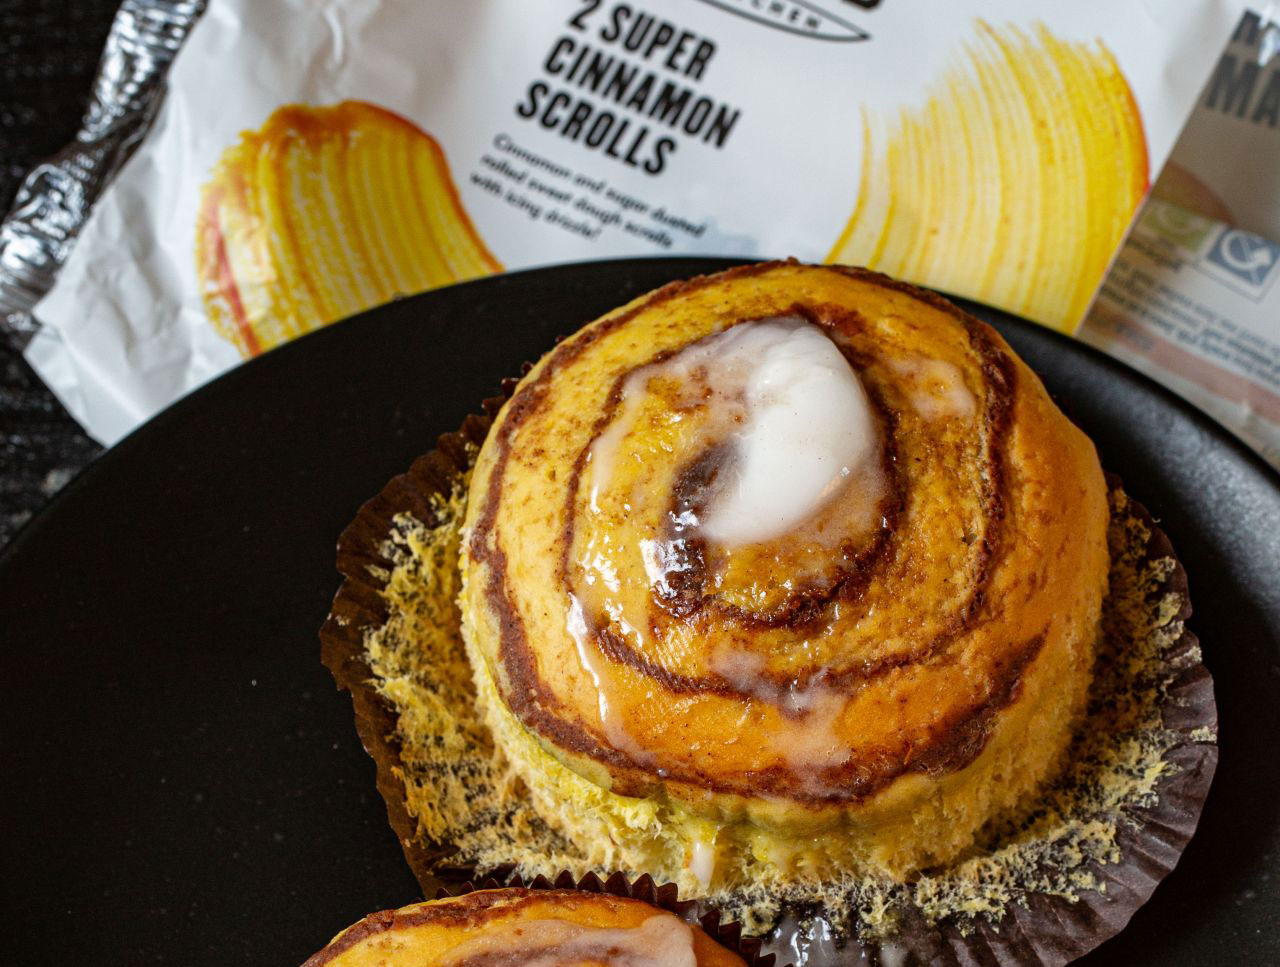 Tesco launch vegan bakery items including cinnamon rolls in Wicked Kitchen range